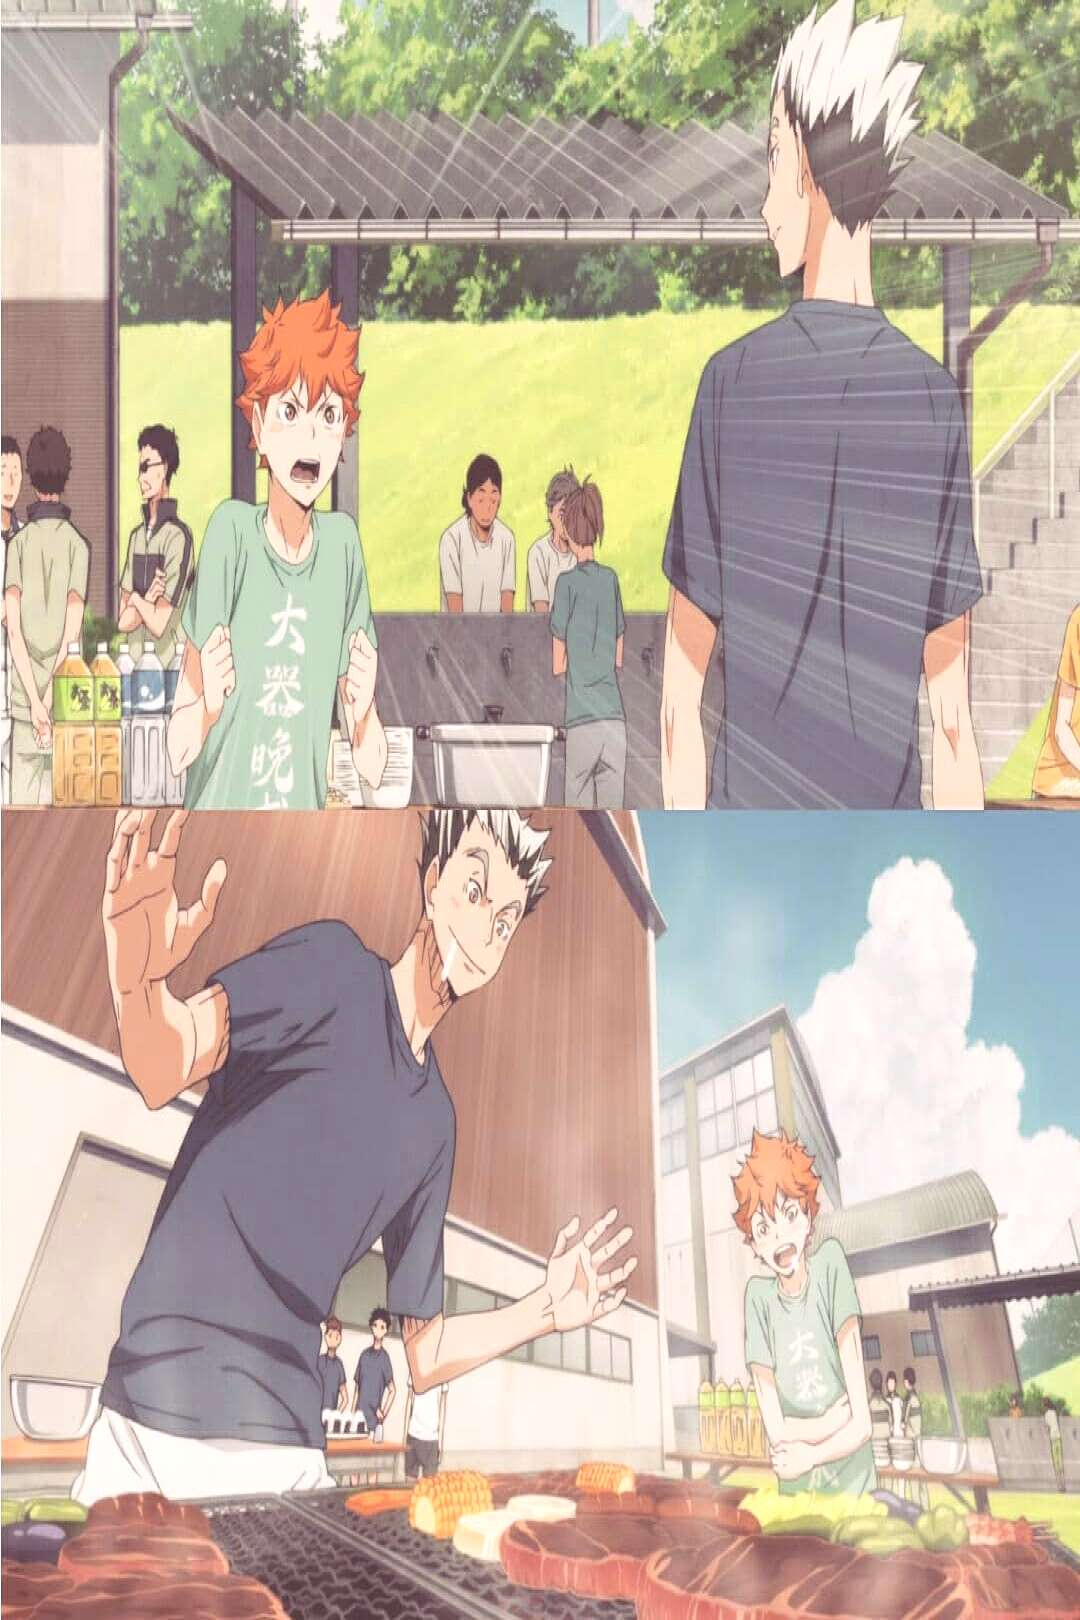 Barbeque BBQ Anime : Haikyuu S2 #recommendations #anime #animesce